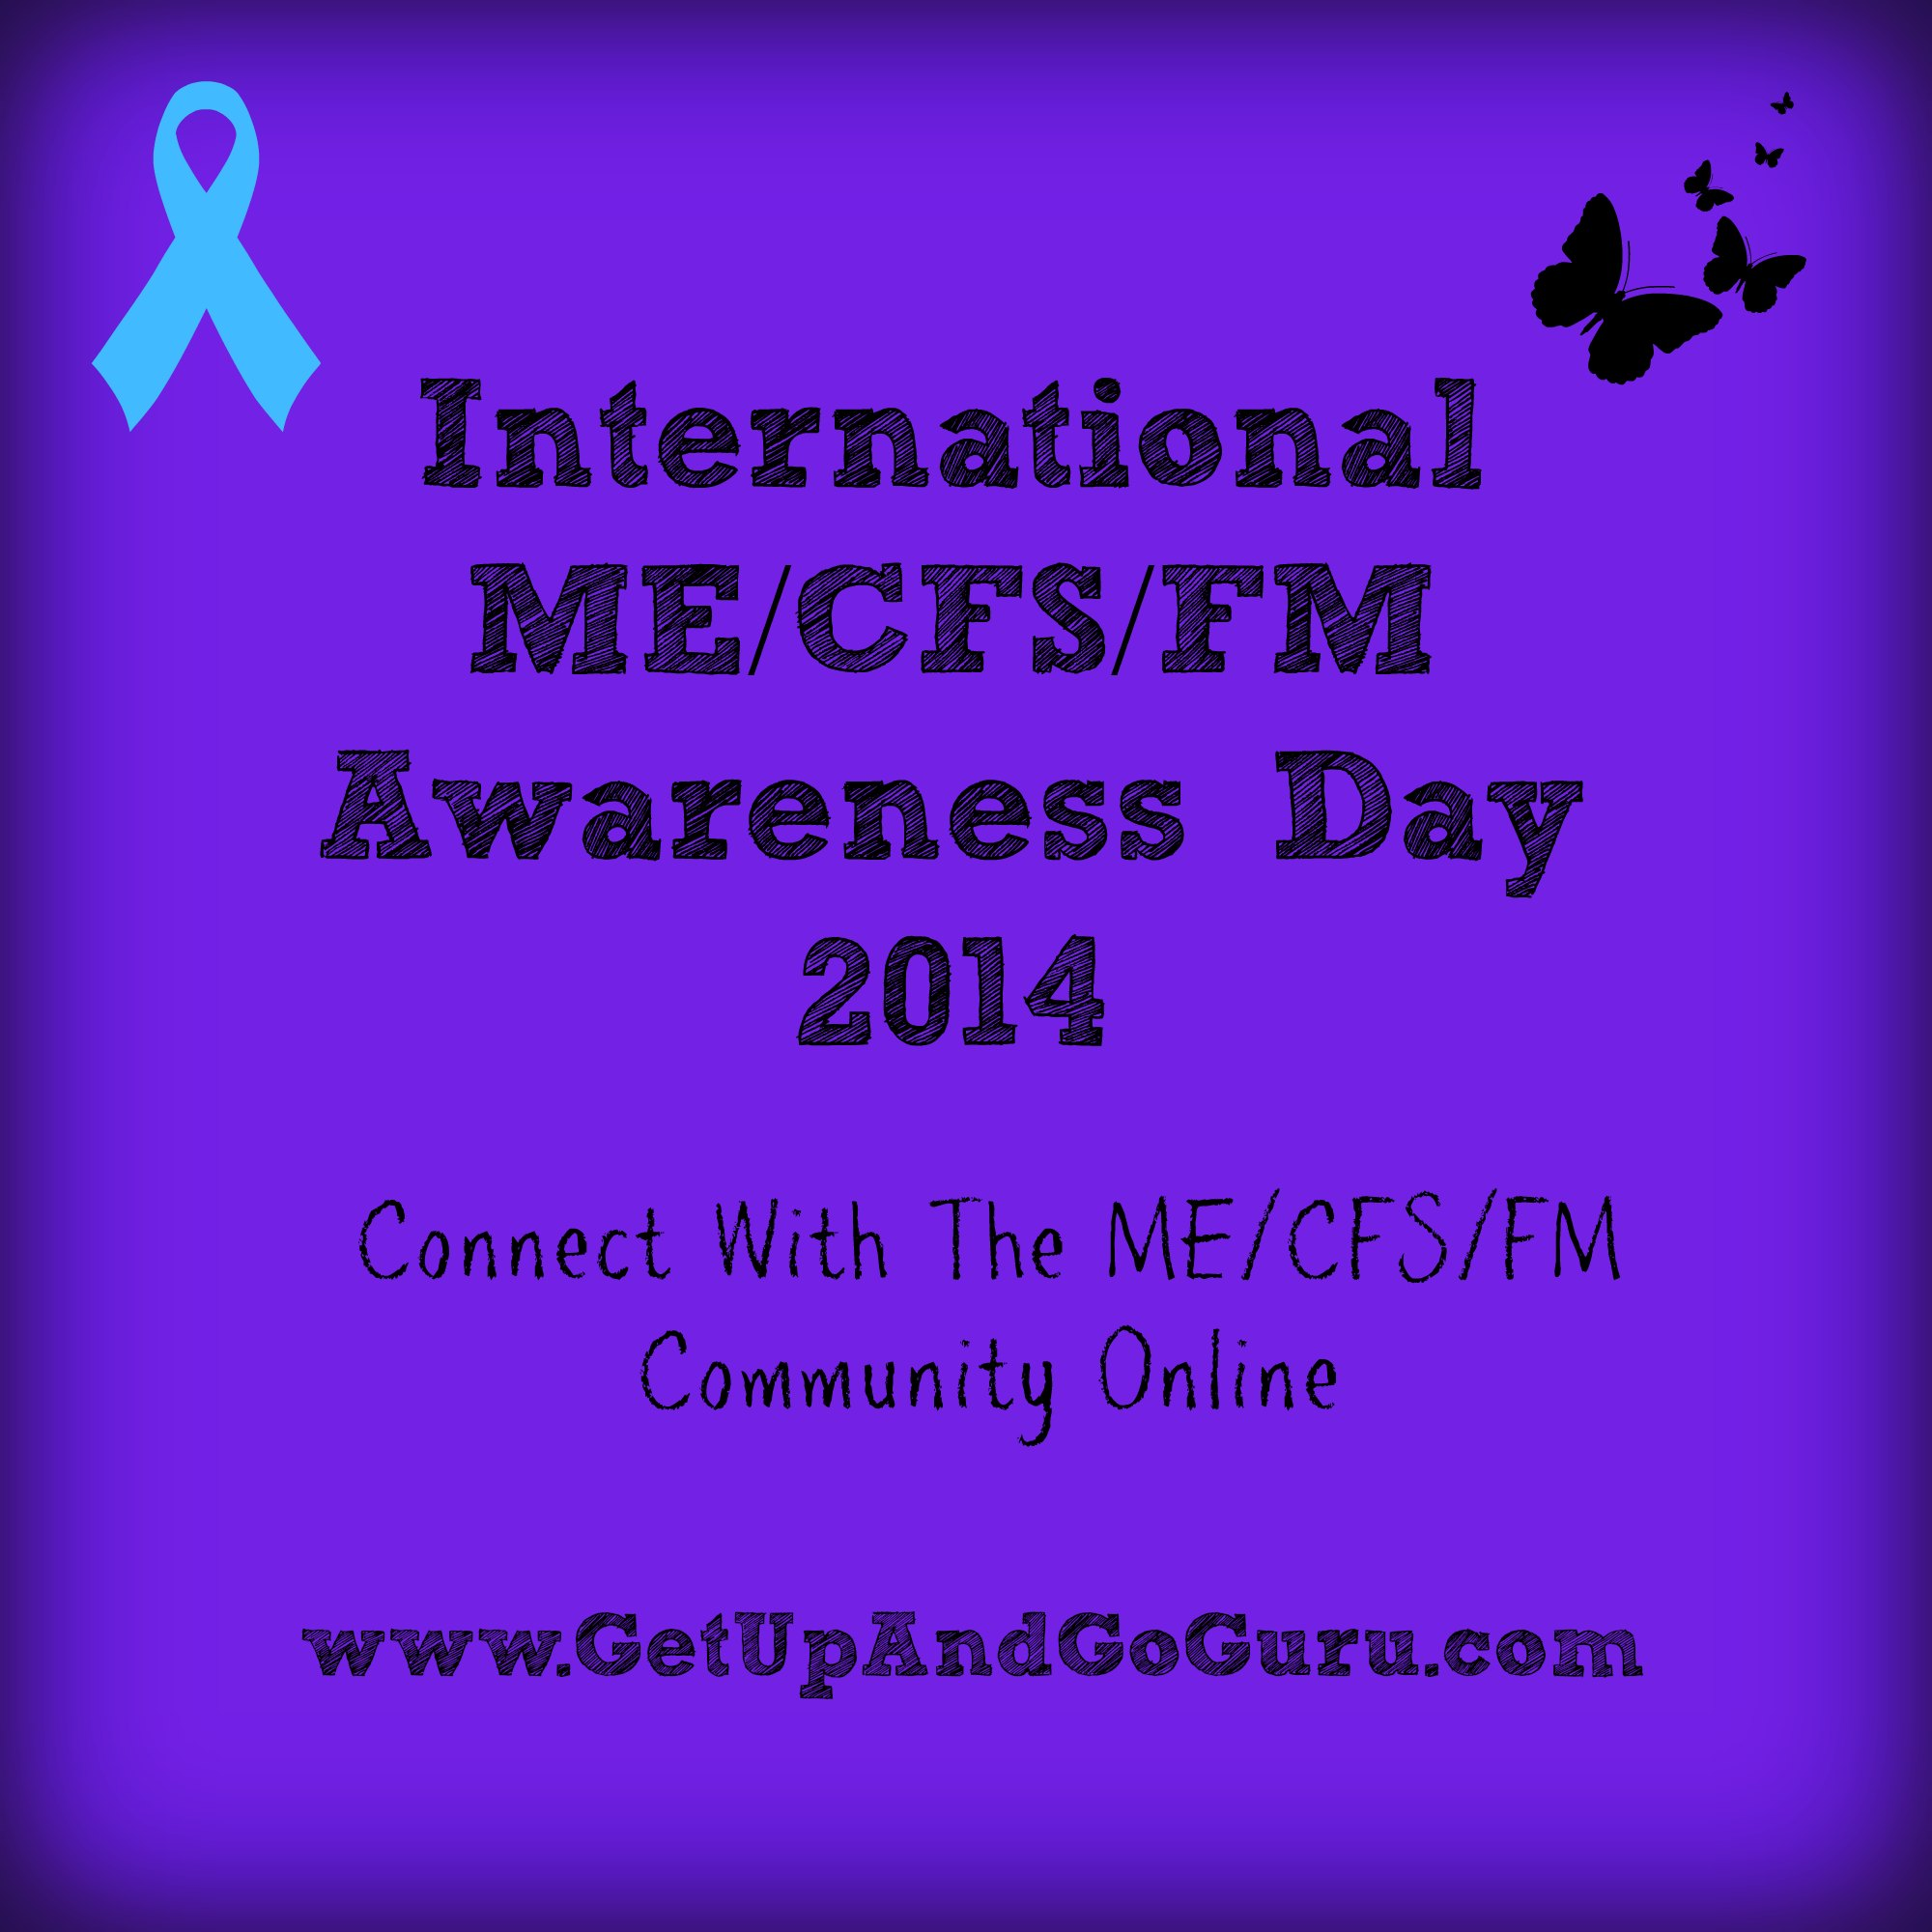 Awareness Day 2014 Blog Pic - Connect Online - Sml